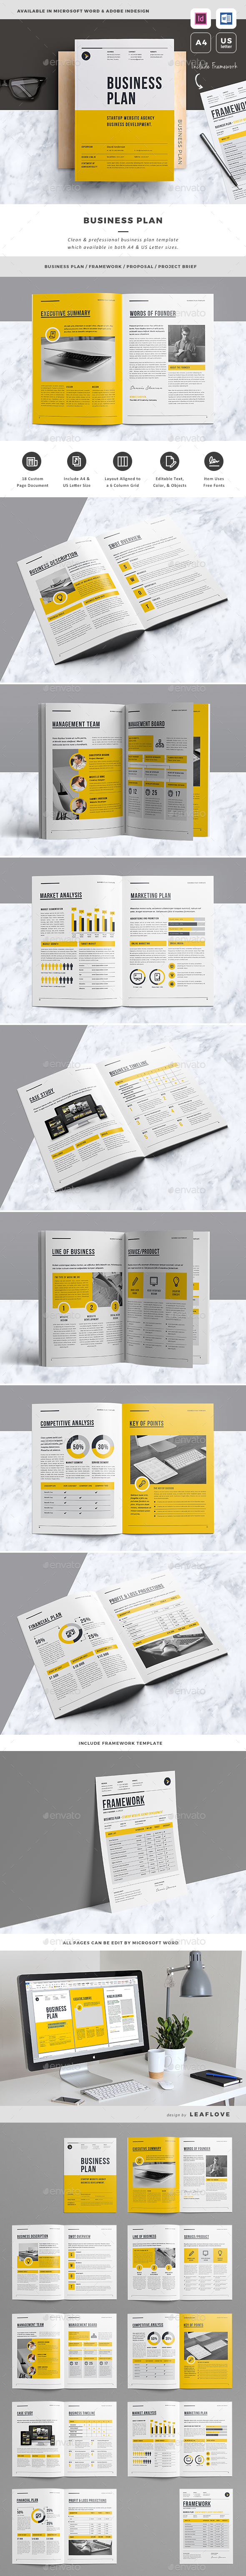 Business Plan InDesign Graphics Designs Templates - Business plan template indesign